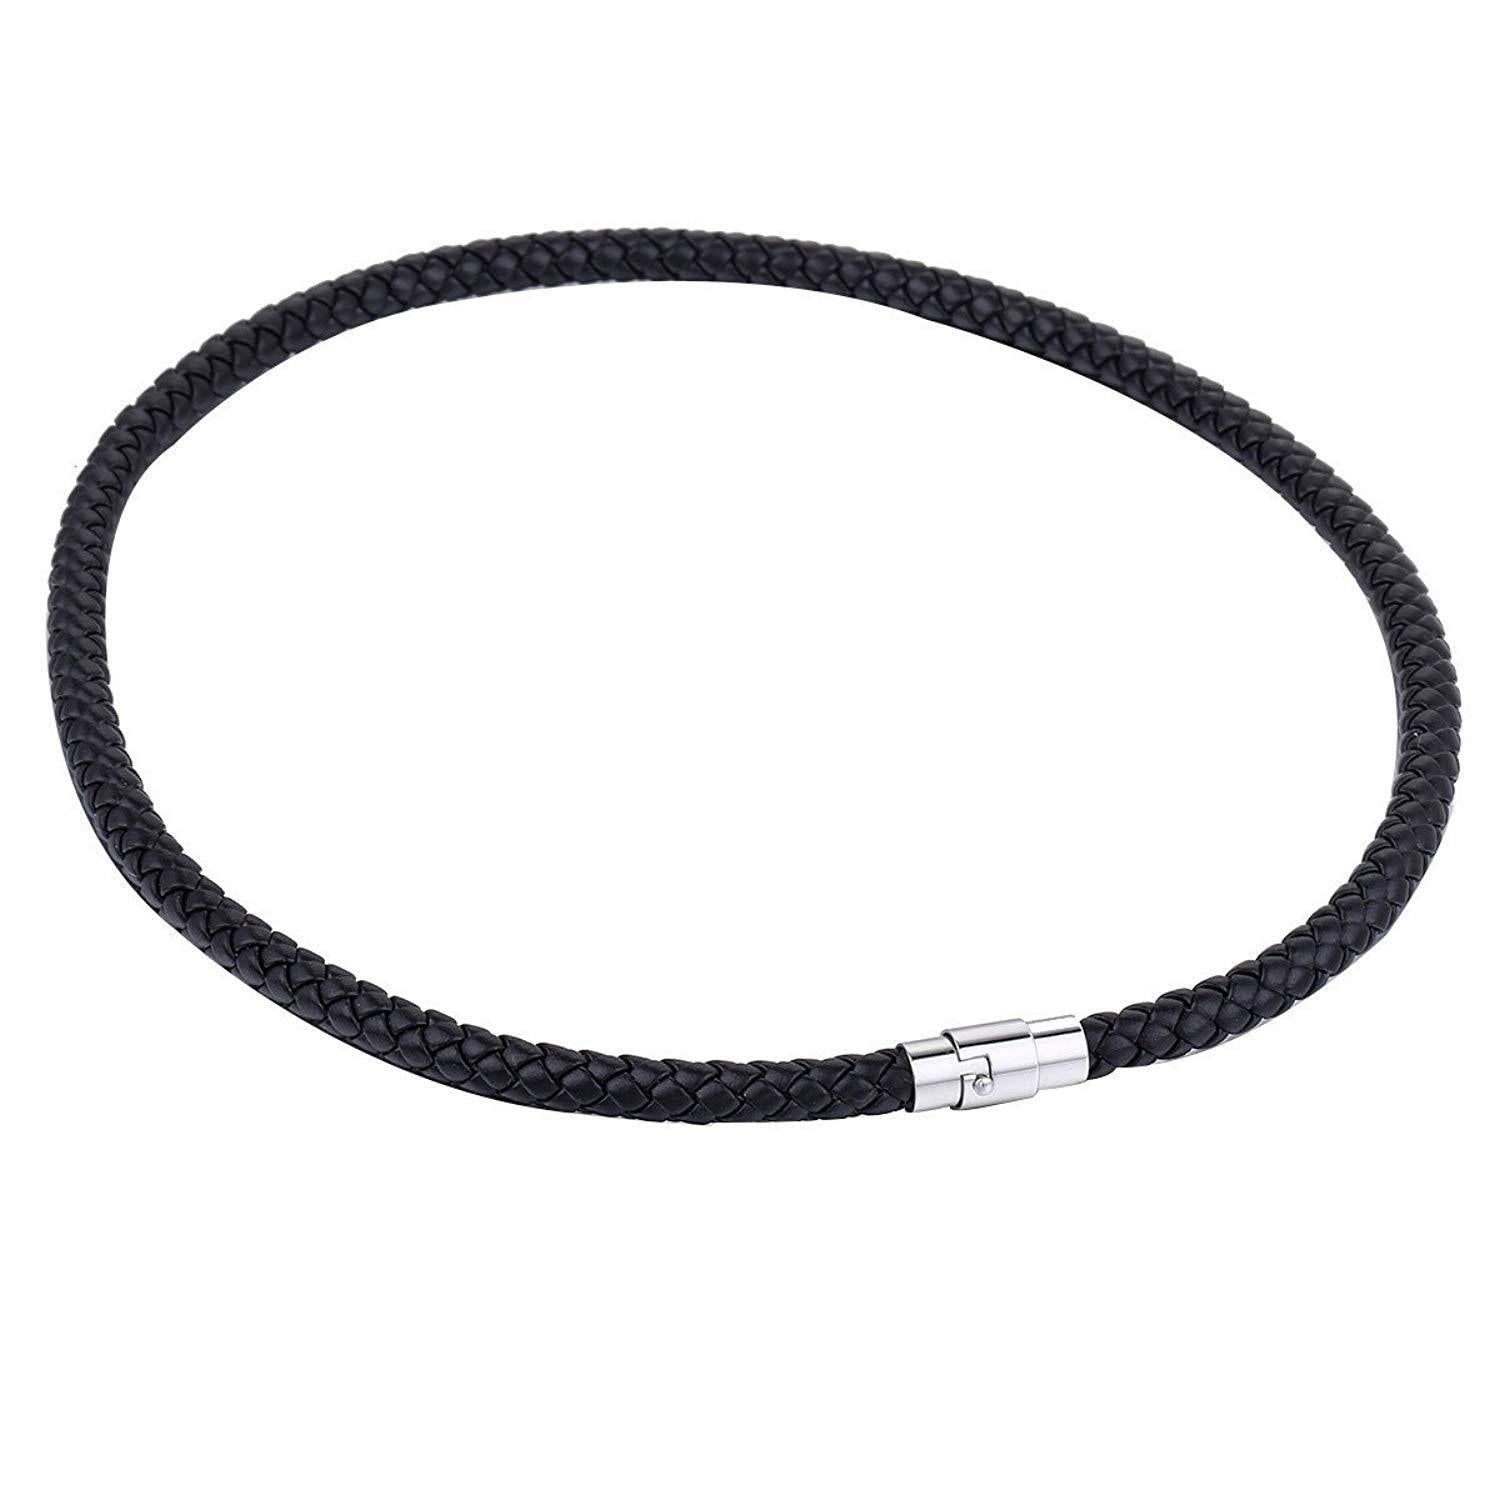 Trendsmax 6mm Black Braided Cord Rope Man-made Leather Necklace Bracelet @ Sons of Odin™ - Men's